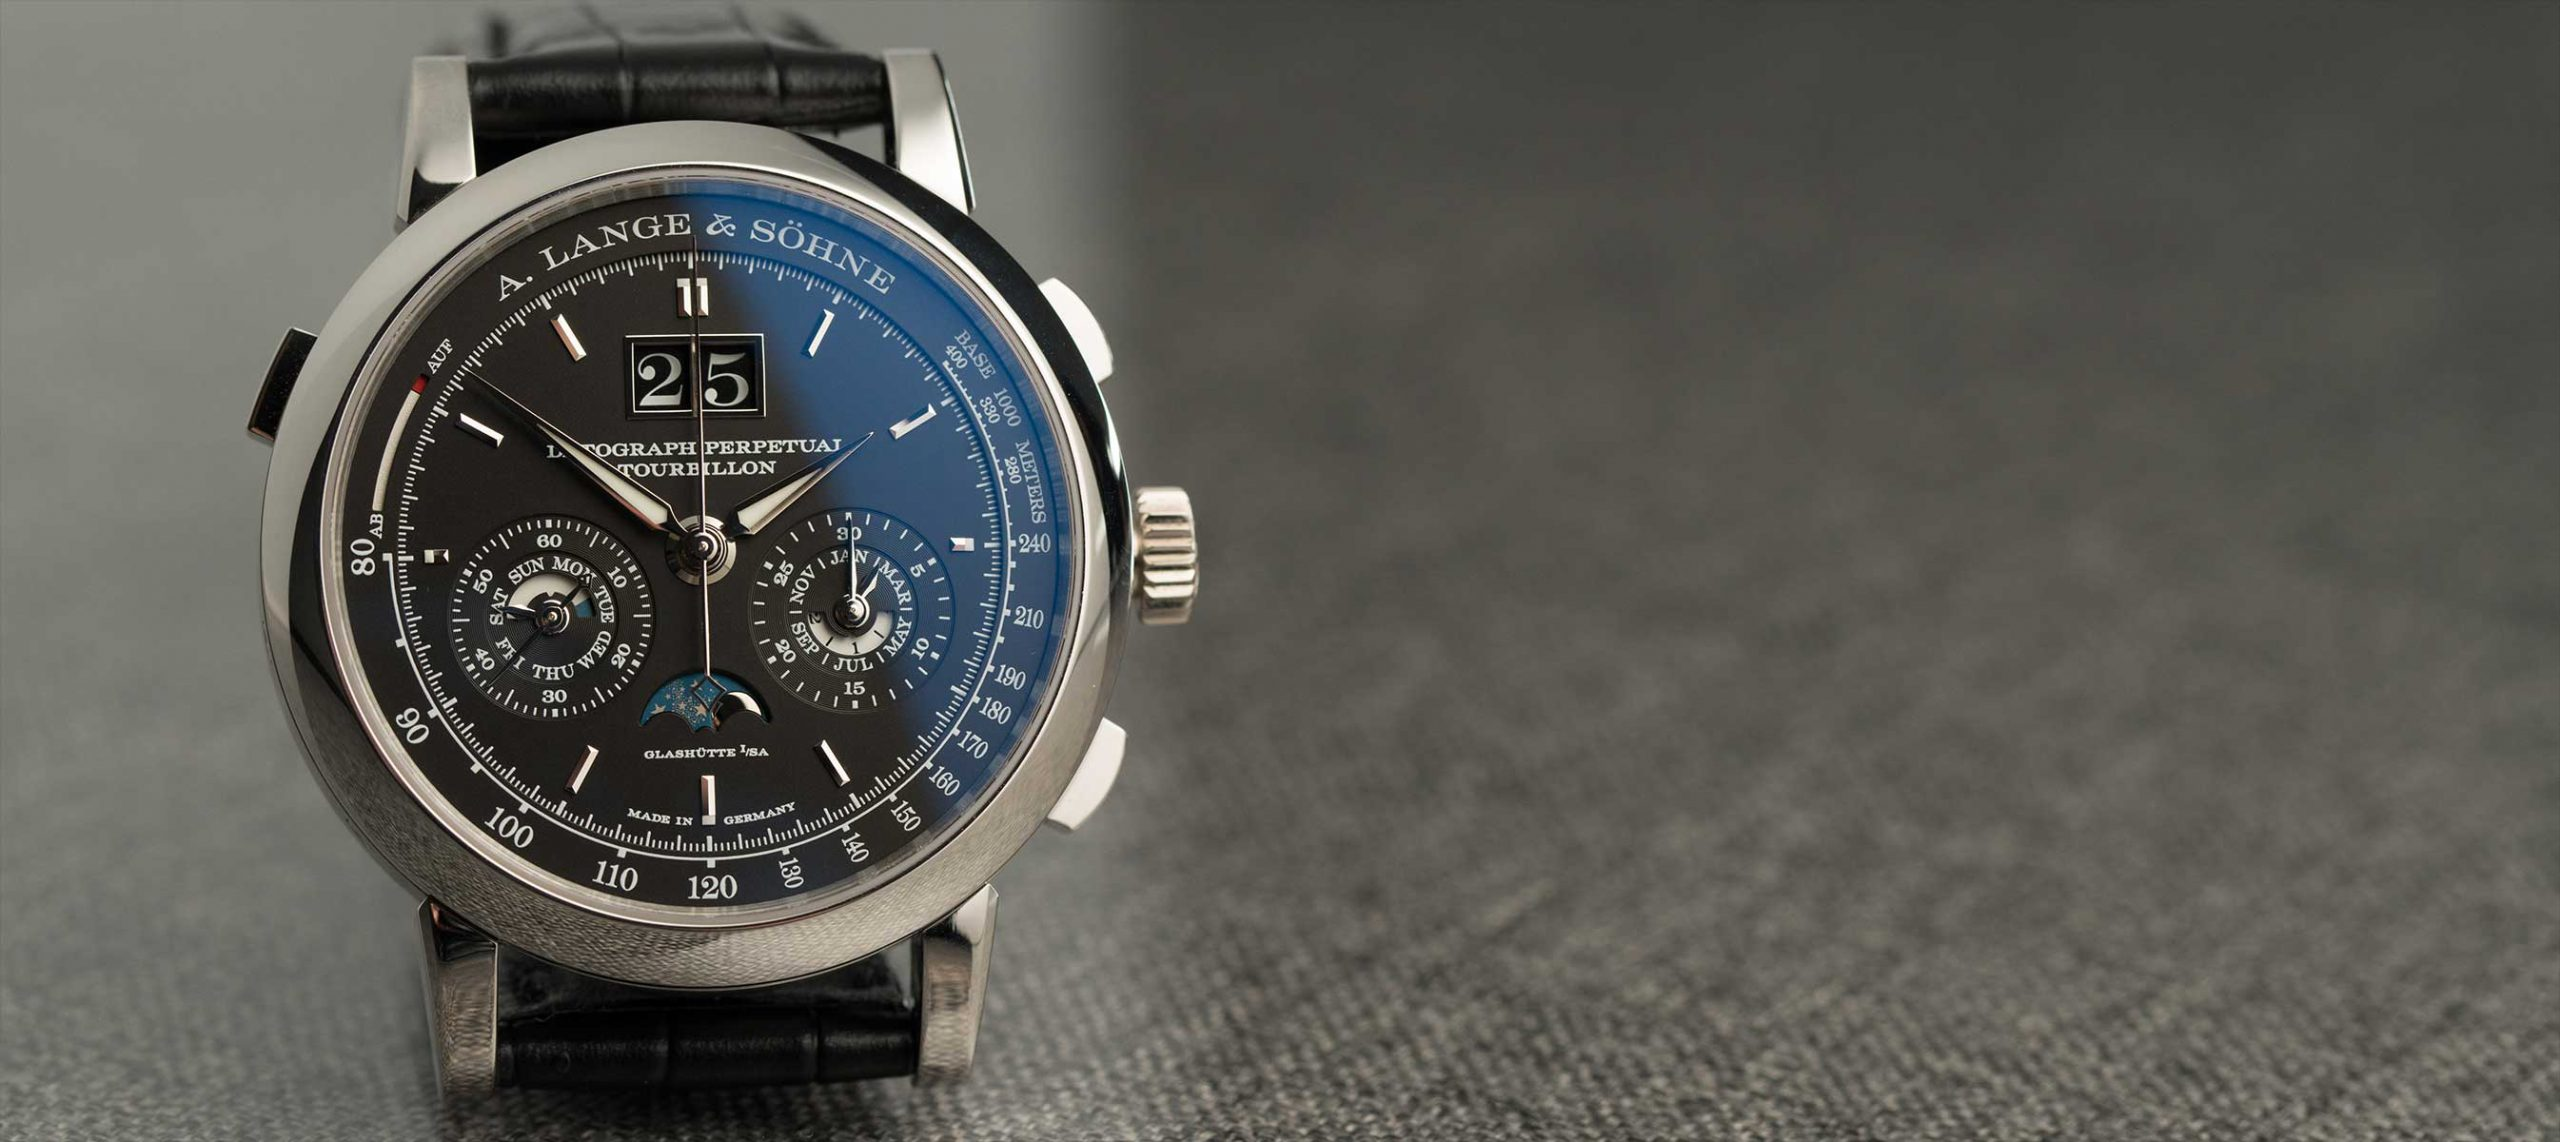 HANDS-ON: The A. Lange & Söhne Datograph Perpetual Tourbillon